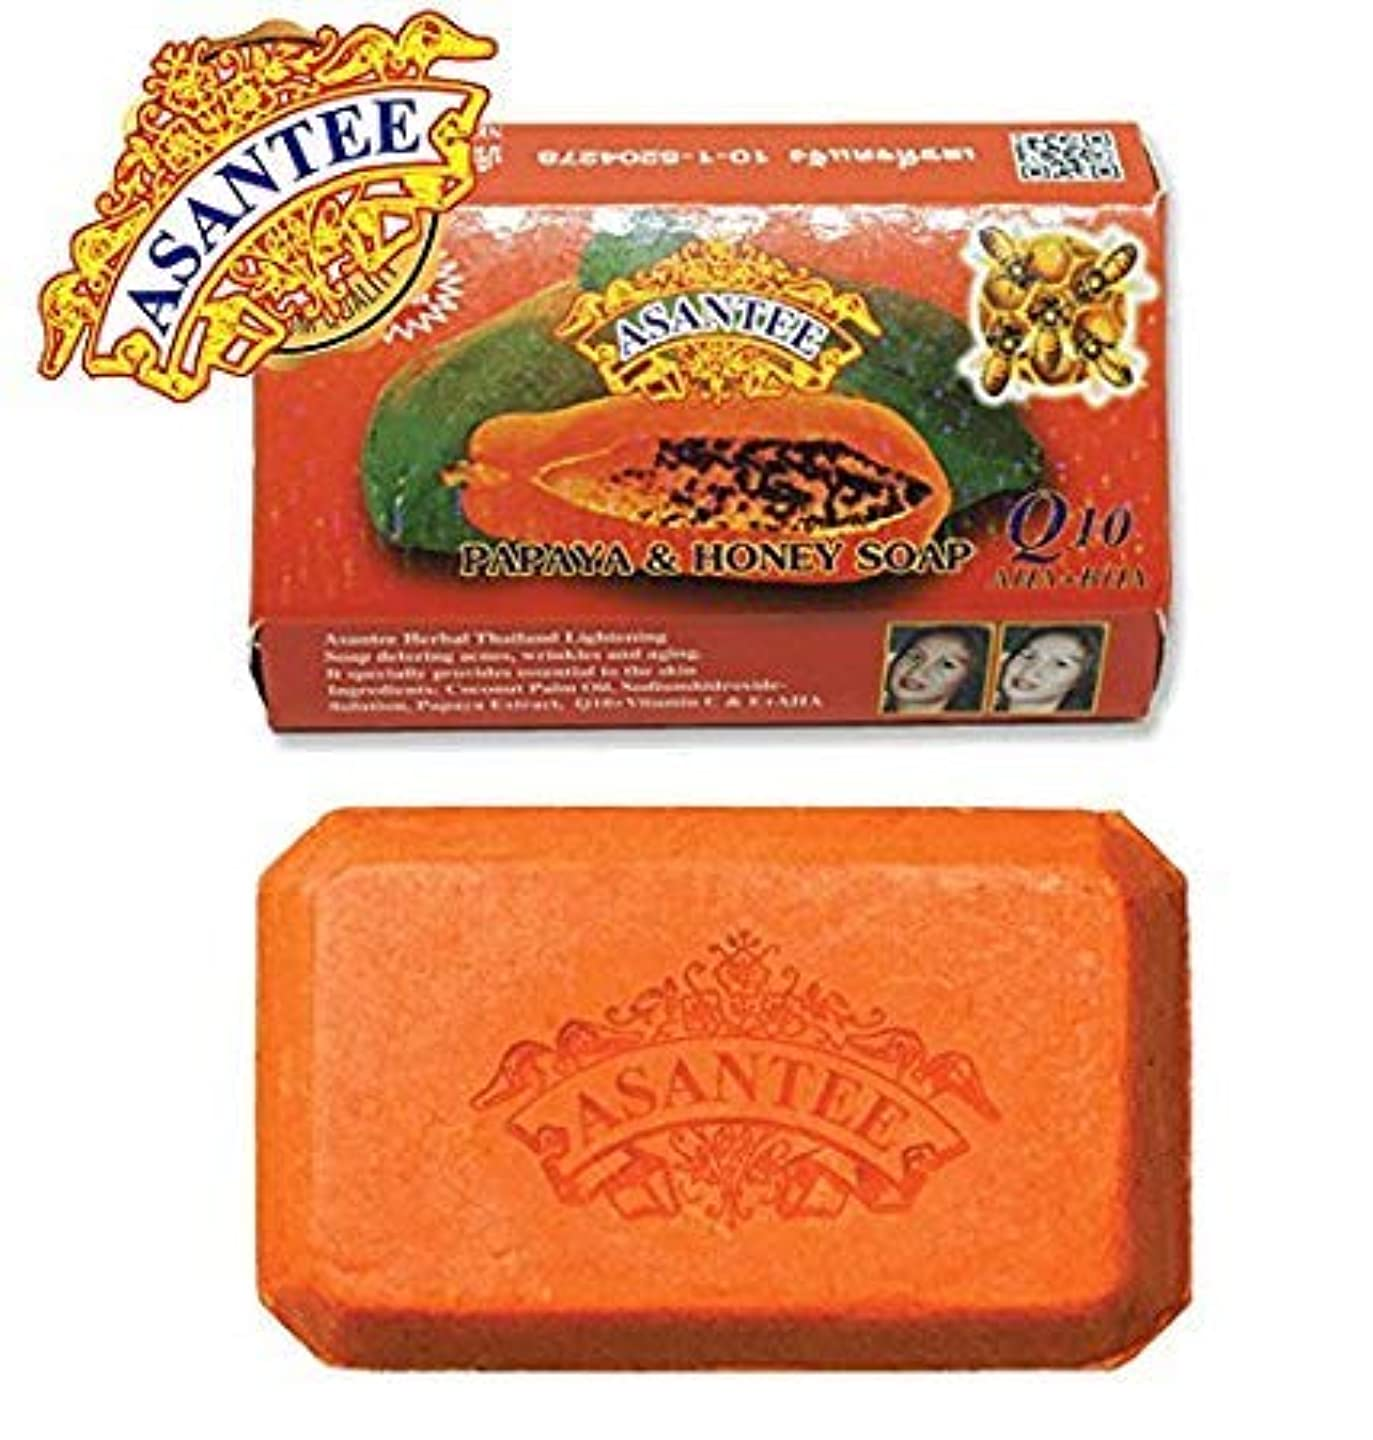 無効にする必要性バレエAsantee Thai Papaya Herbal Skin Whitening Soap 135g (1 pcs)